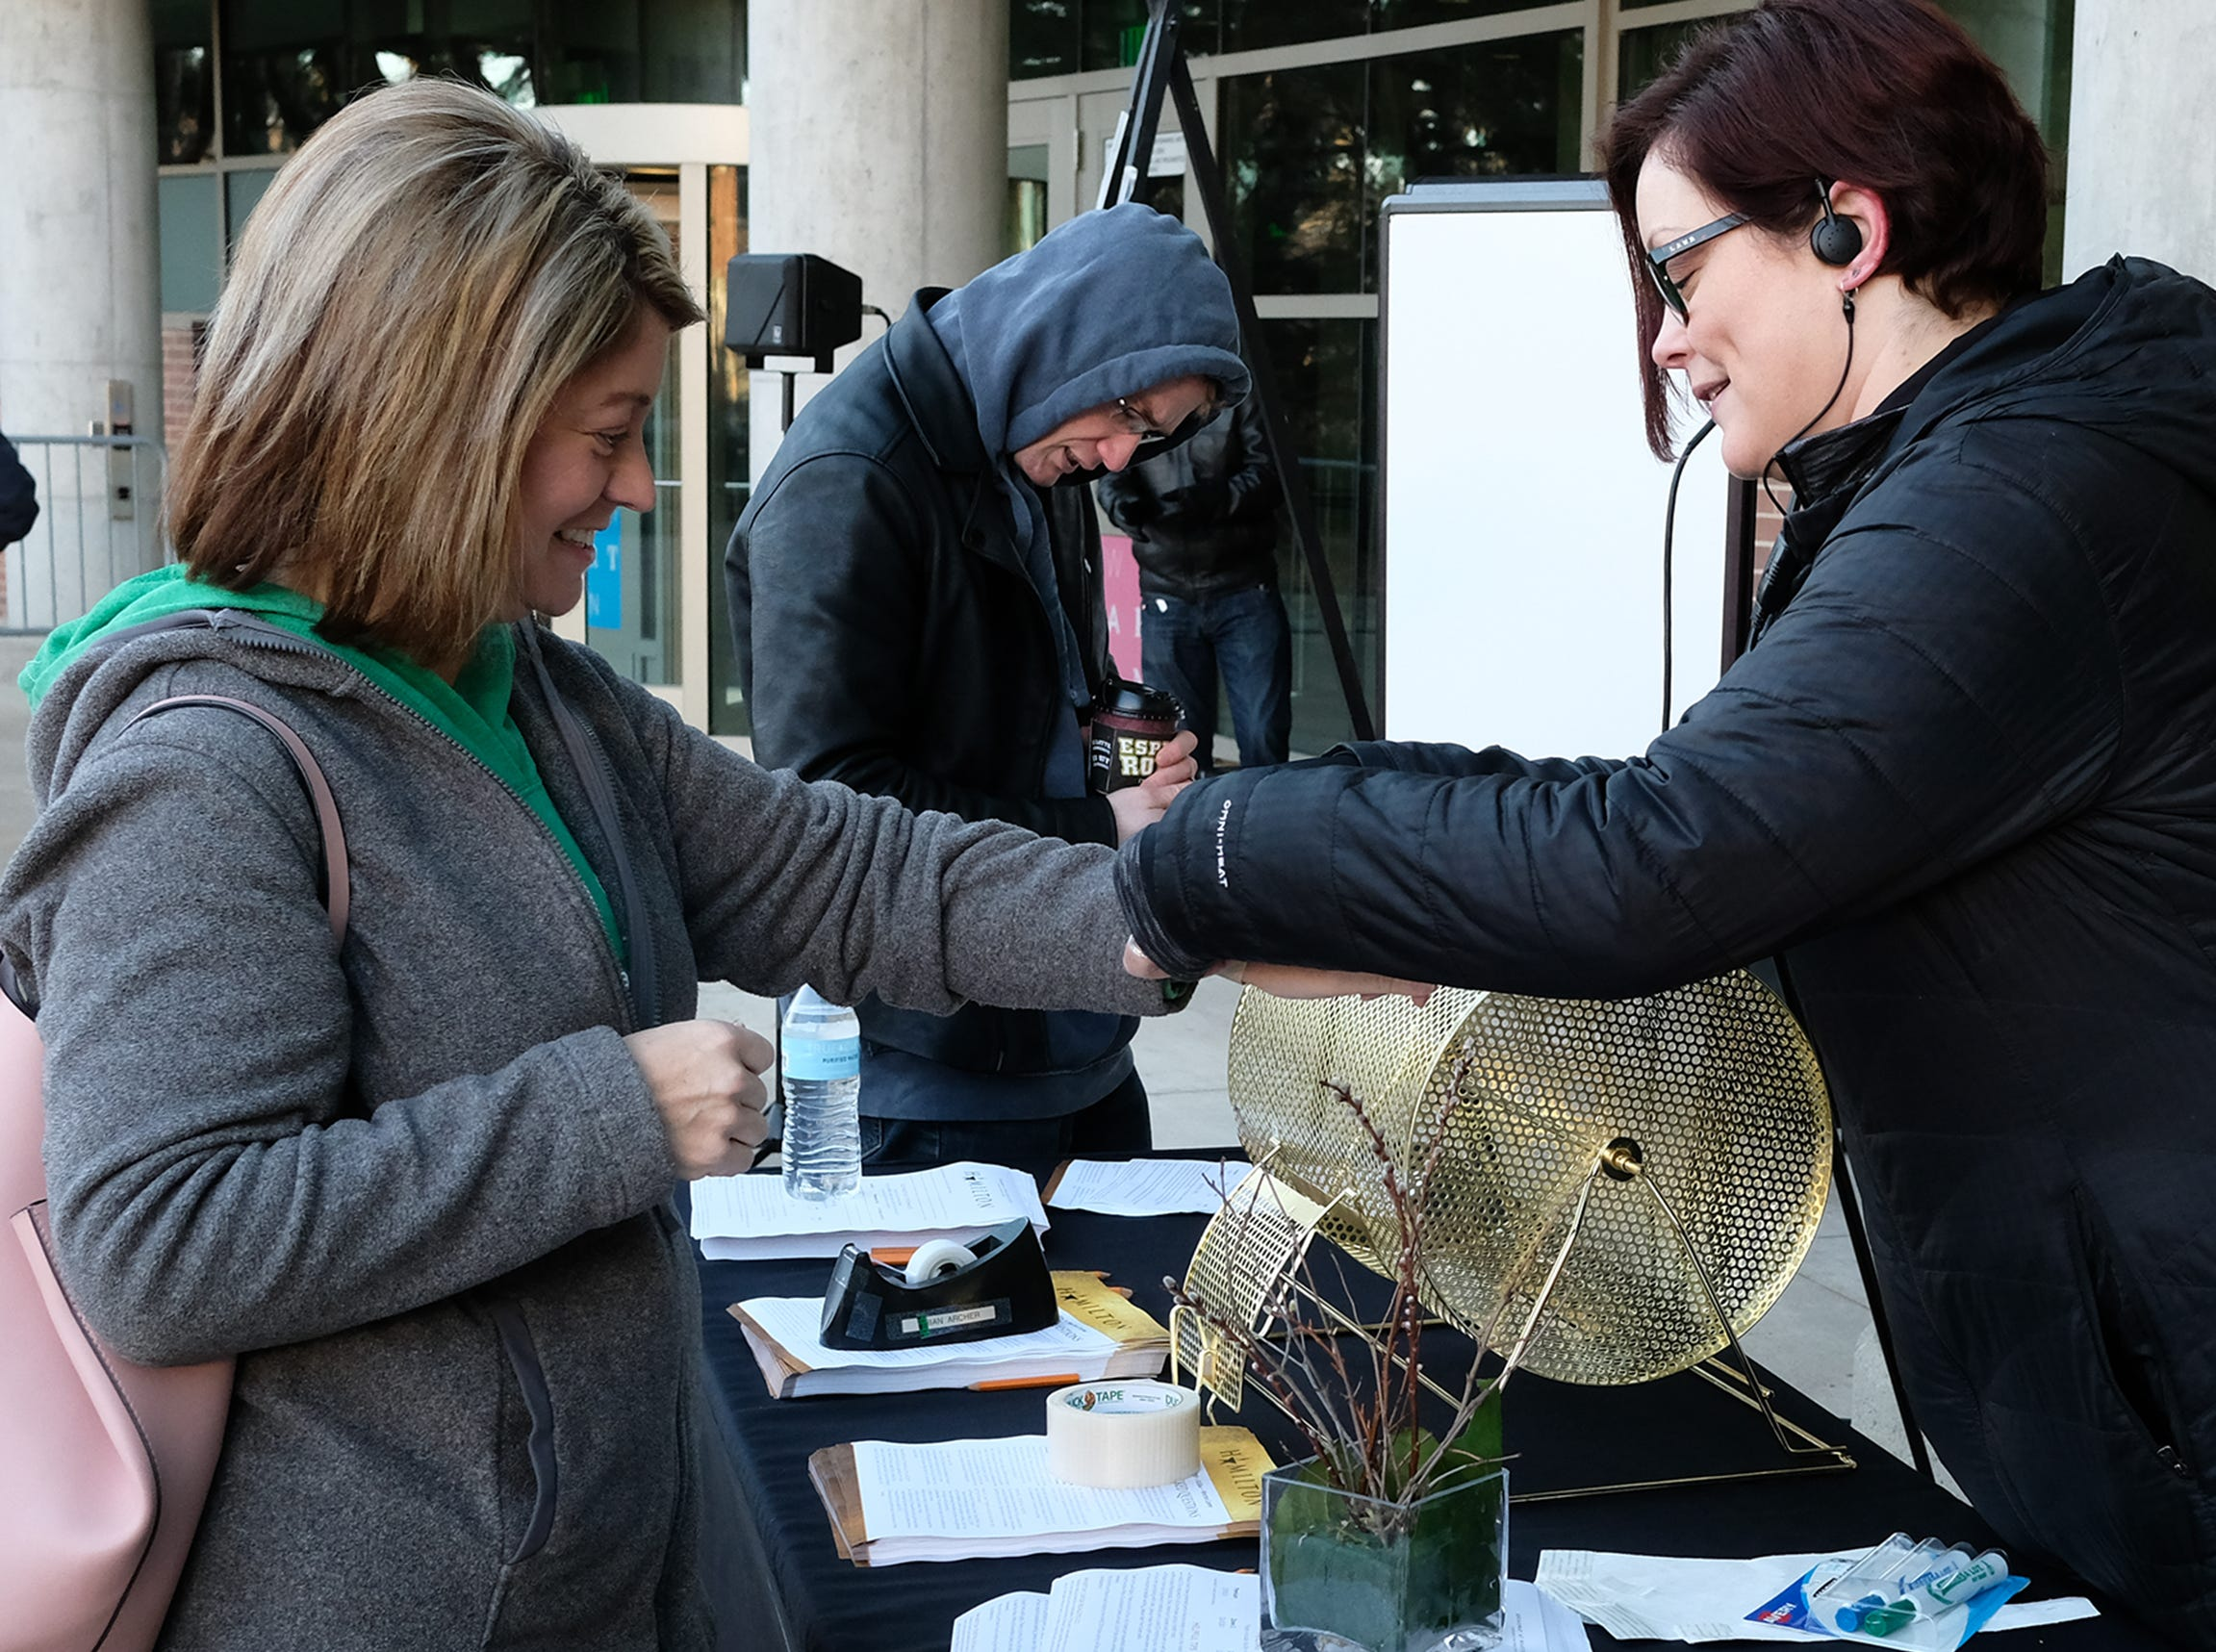 Dawn Ellis from East Lansing, left, gets a wristband with a number on it from Lisa Rentz, Director of Marketing and Communication at the Wharton Center Saturday, March 23, 2019. The wristband makes them eligible to purchase tickets for Hamilton the Broadway Musical.